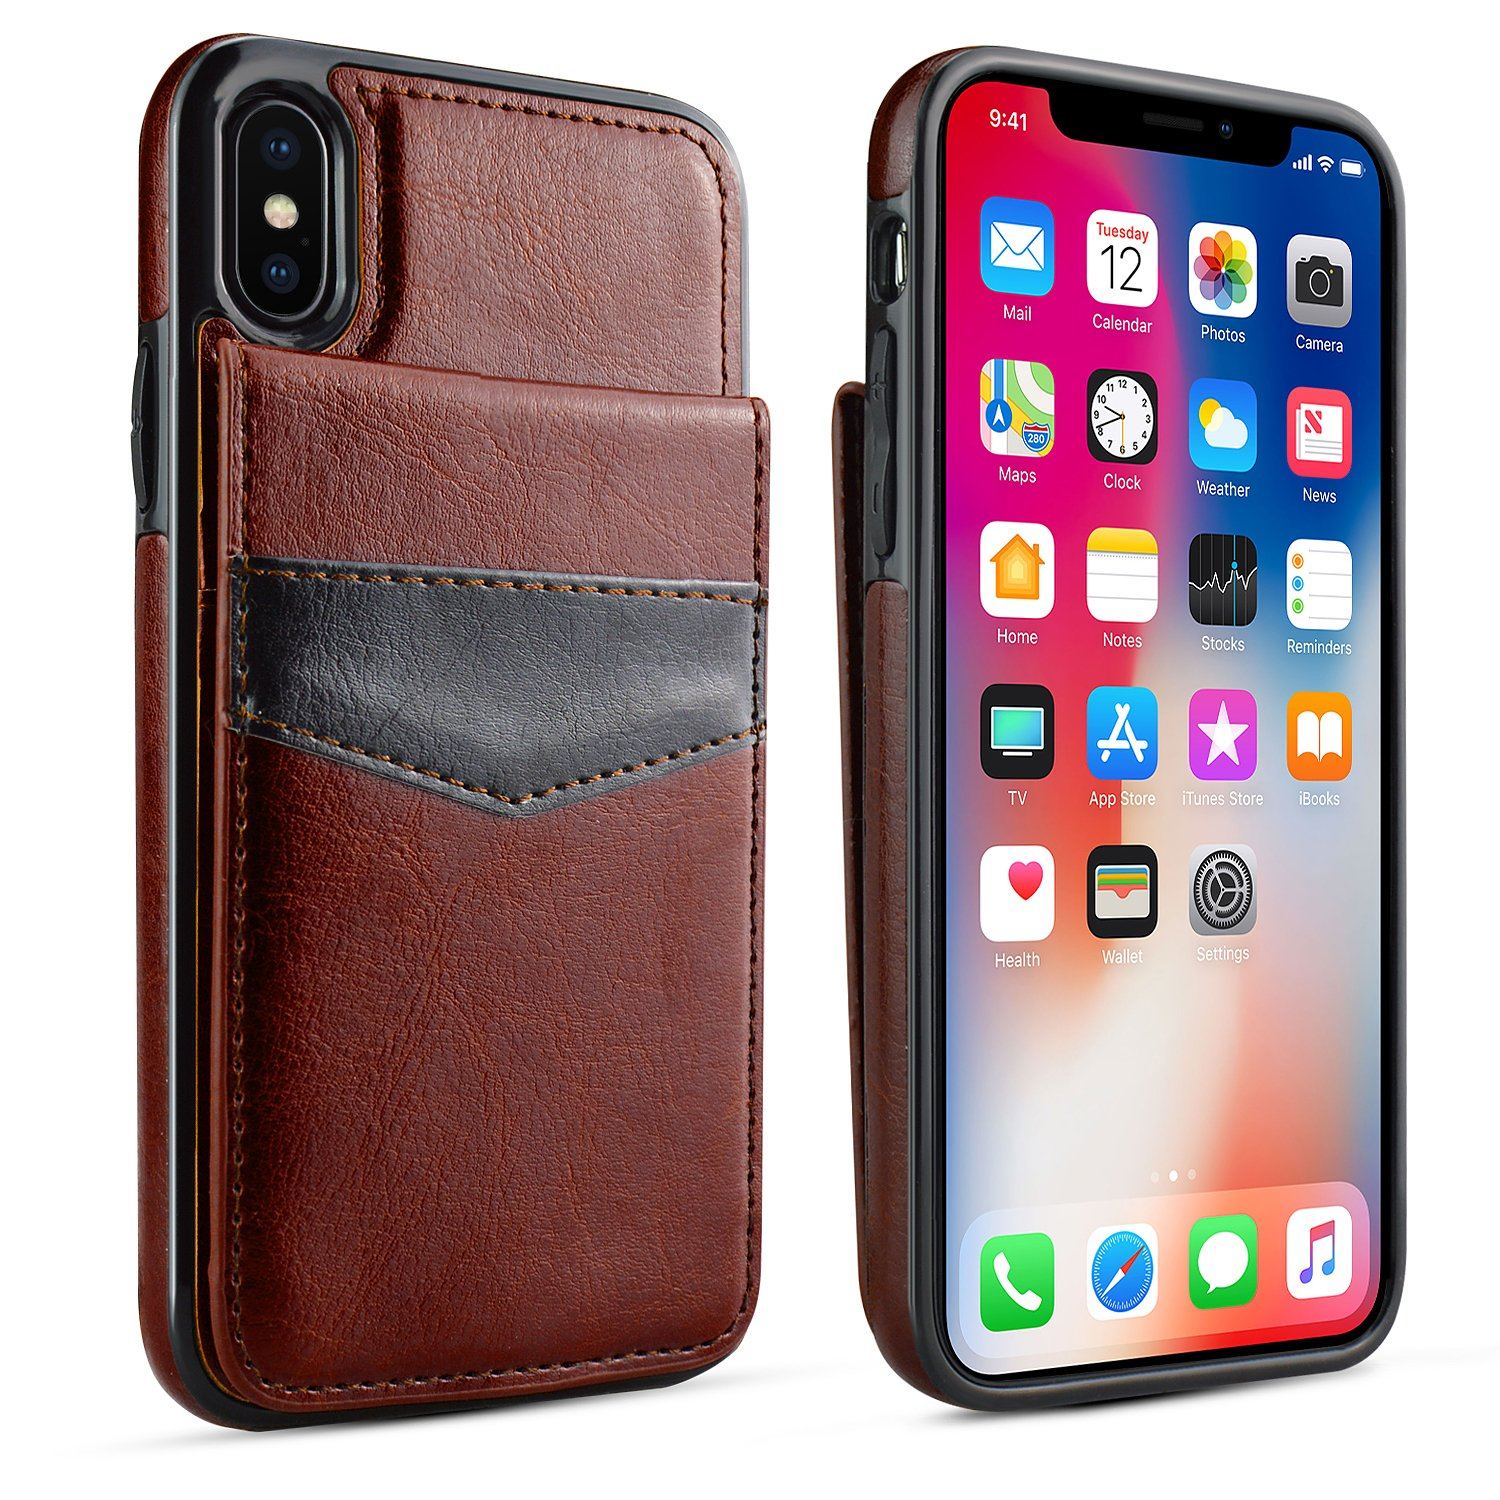 iPhone X Case, iPhone X Card Holder Case, LuckyBaby Premium Leather Folio Flip iPhone X Wallet Case with Credit Card Slots Shock-Absorbing Protective Case for iPhone X / iPhone 10 (2017) - Brown by LuckyBaby (Image #2)